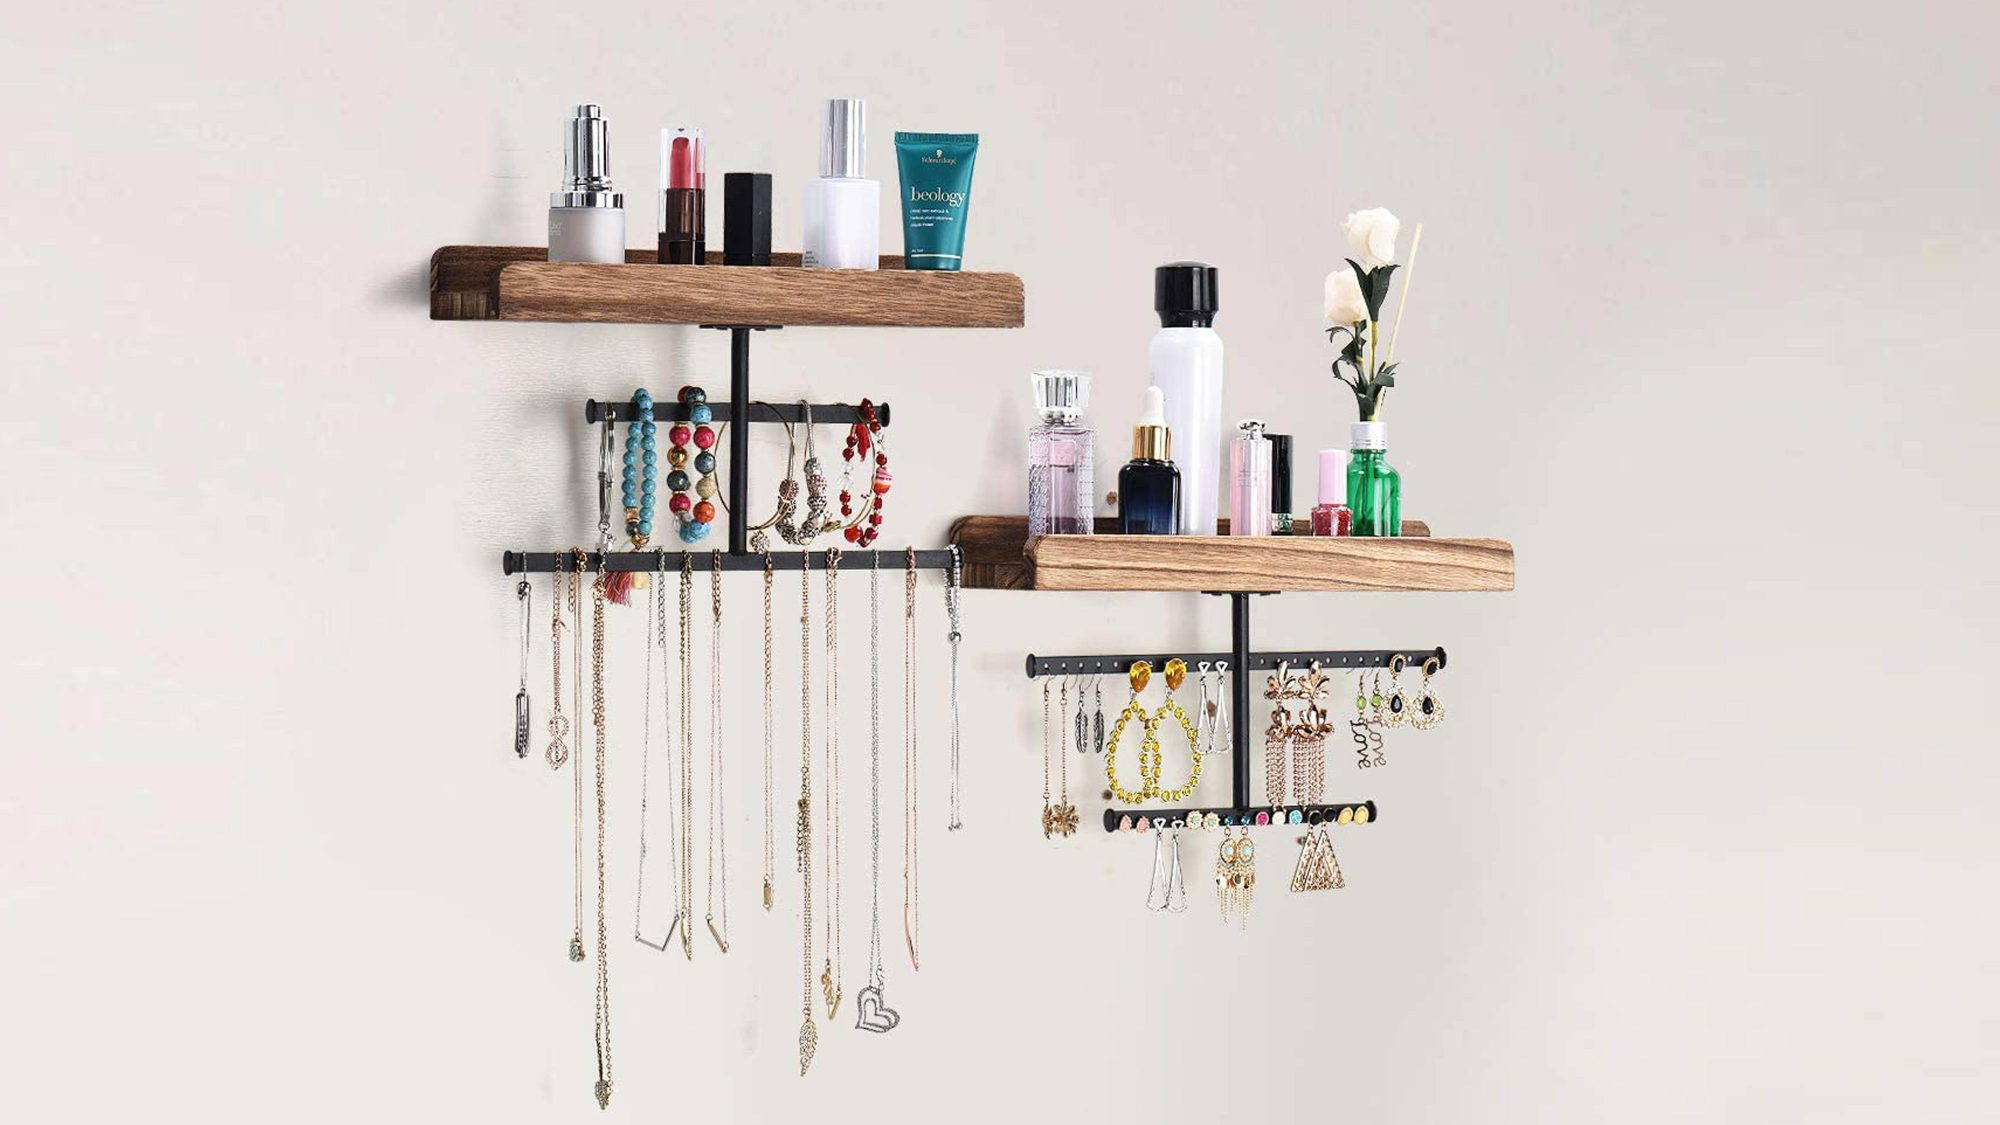 Keebofly Hanging Wall Mounted Jewelry Organizer with Rustic Wood Jewelry Holder Display